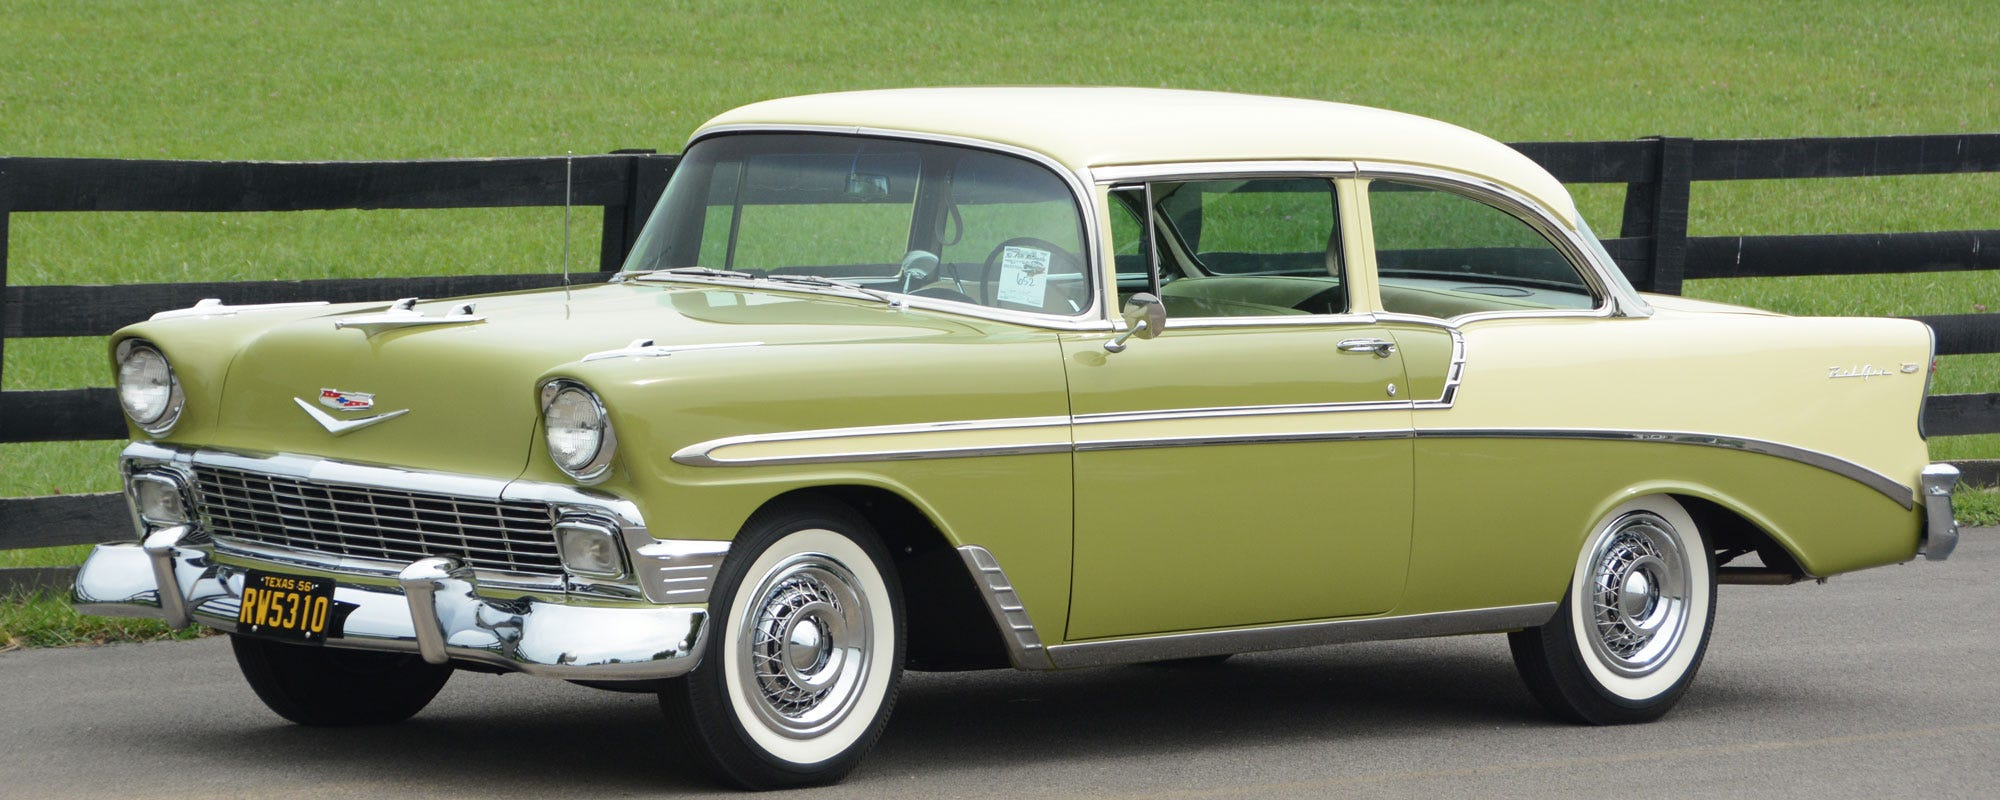 1956 Chevrolet Bel Air 2 Door Post with bias ply whitewall tires